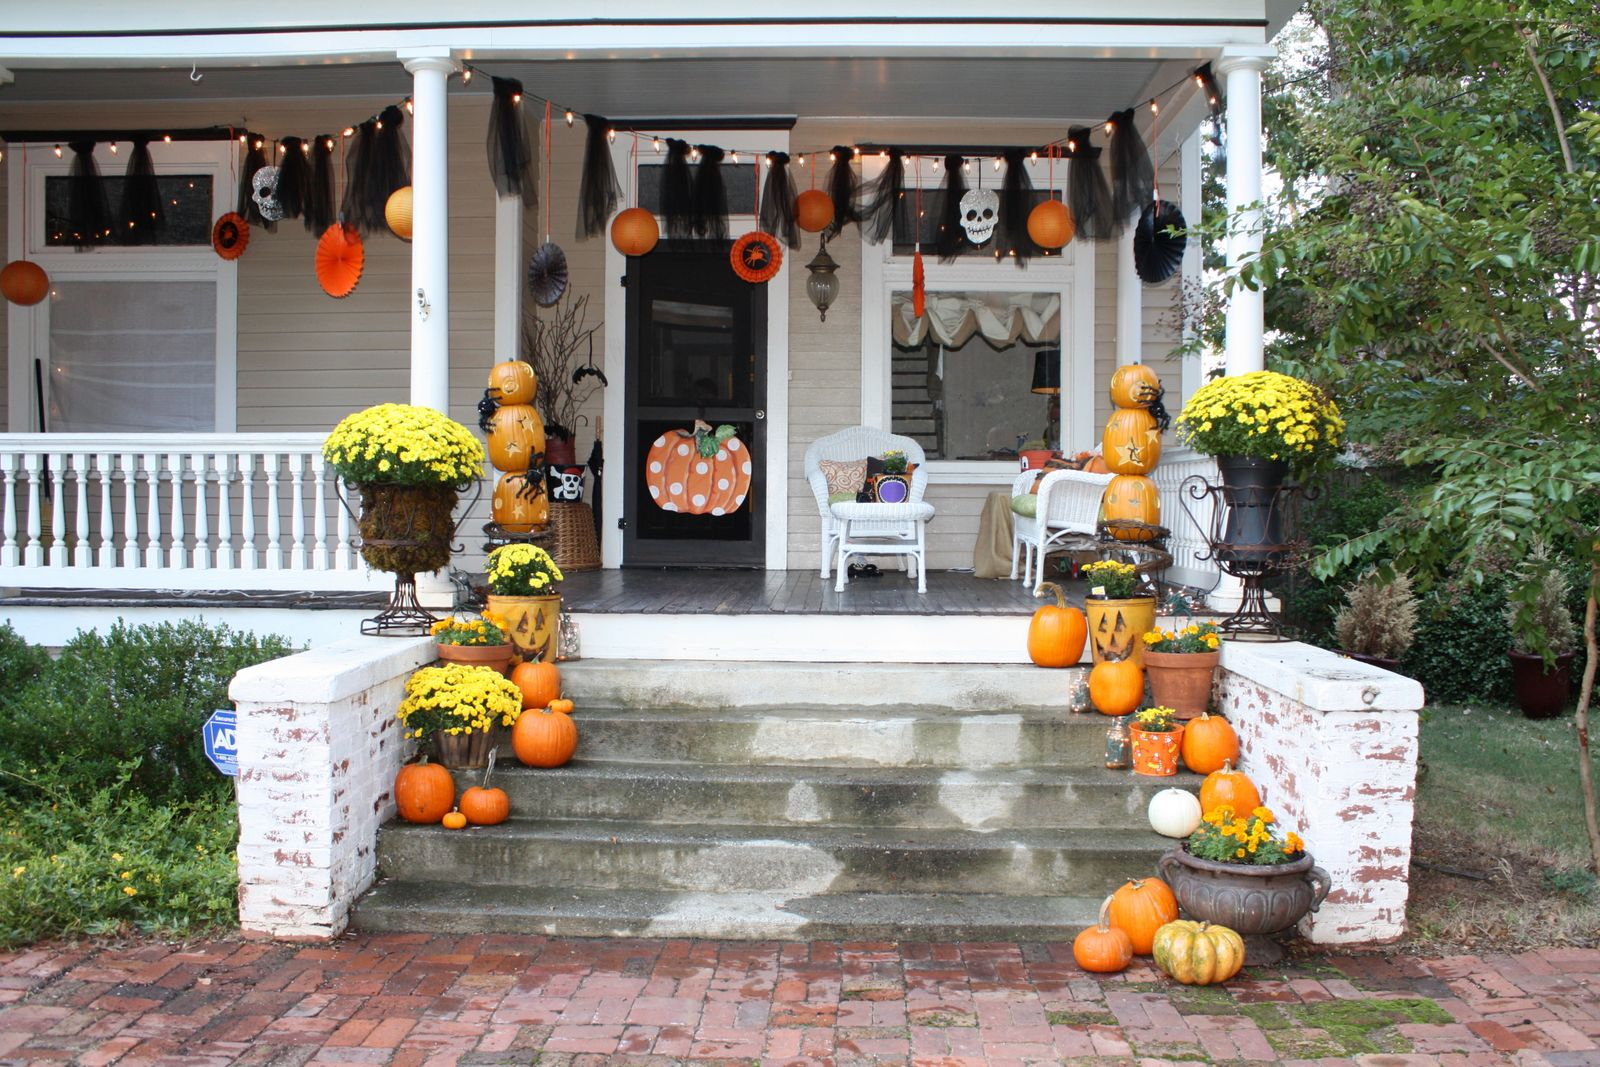 exterior home design ideas entryway html with Whimsical Halloween Decorations on Aea7f0240af829c3 further Porch Designs For Mobile Homes further Large Outdoor Carpet Images together with 085fb6a557841120 moreover Modern Ranch Style Homes.